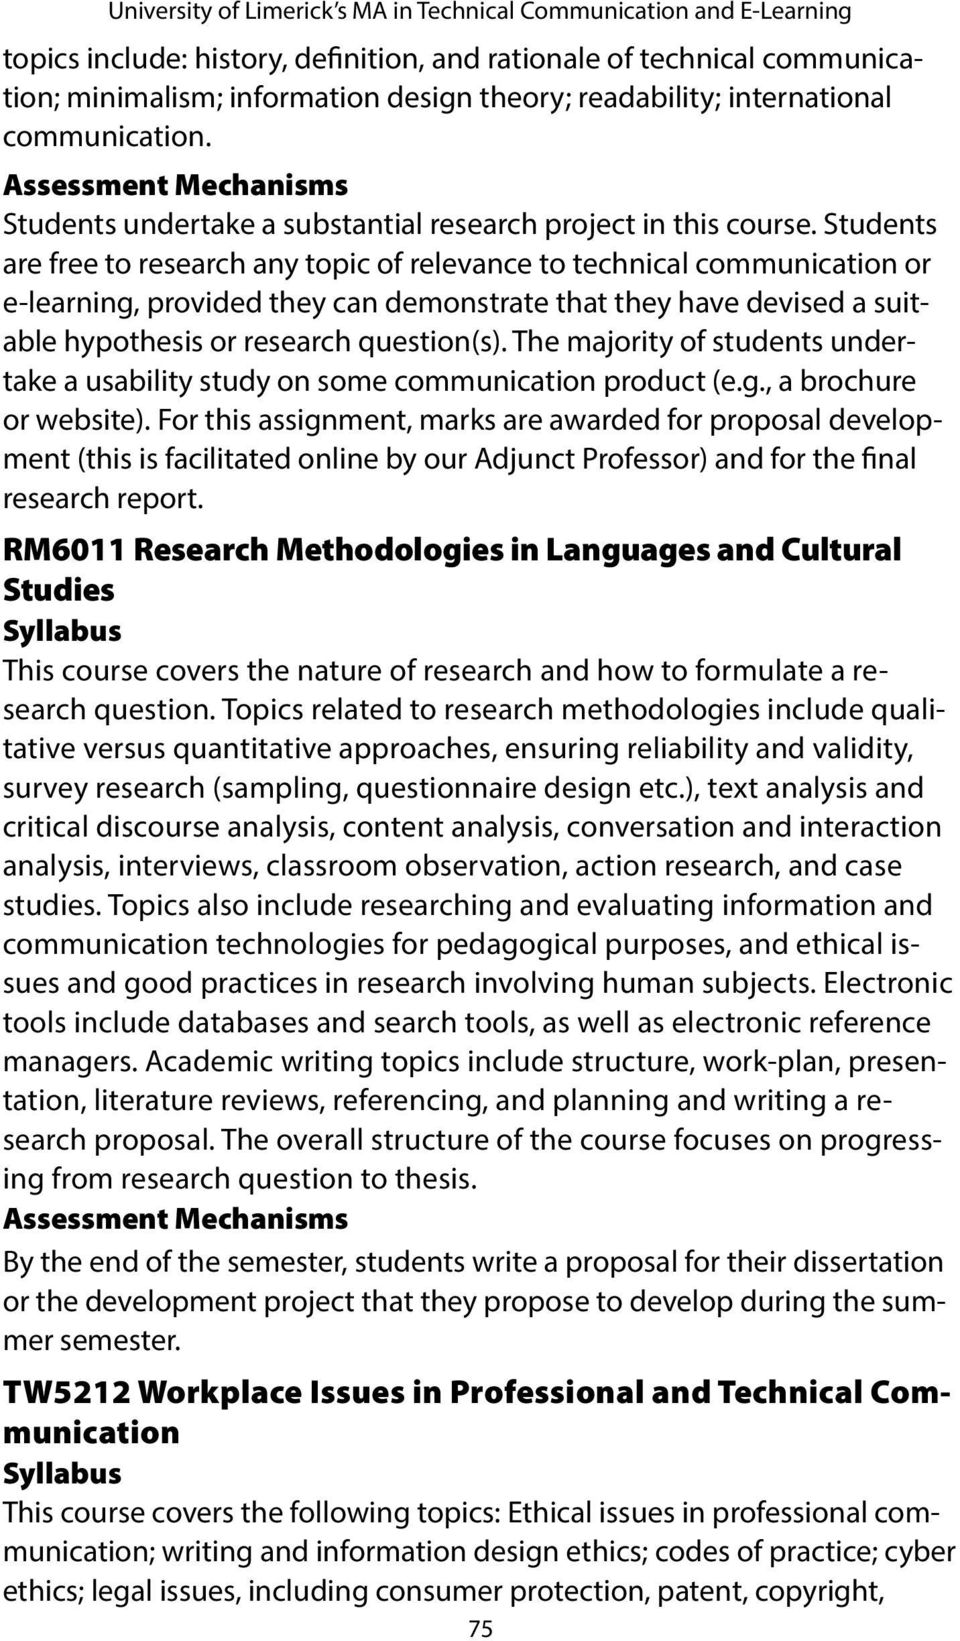 Students are free to research any topic of relevance to technical communication or e-learning, provided they can demonstrate that they have devised a suitable hypothesis or research question(s).